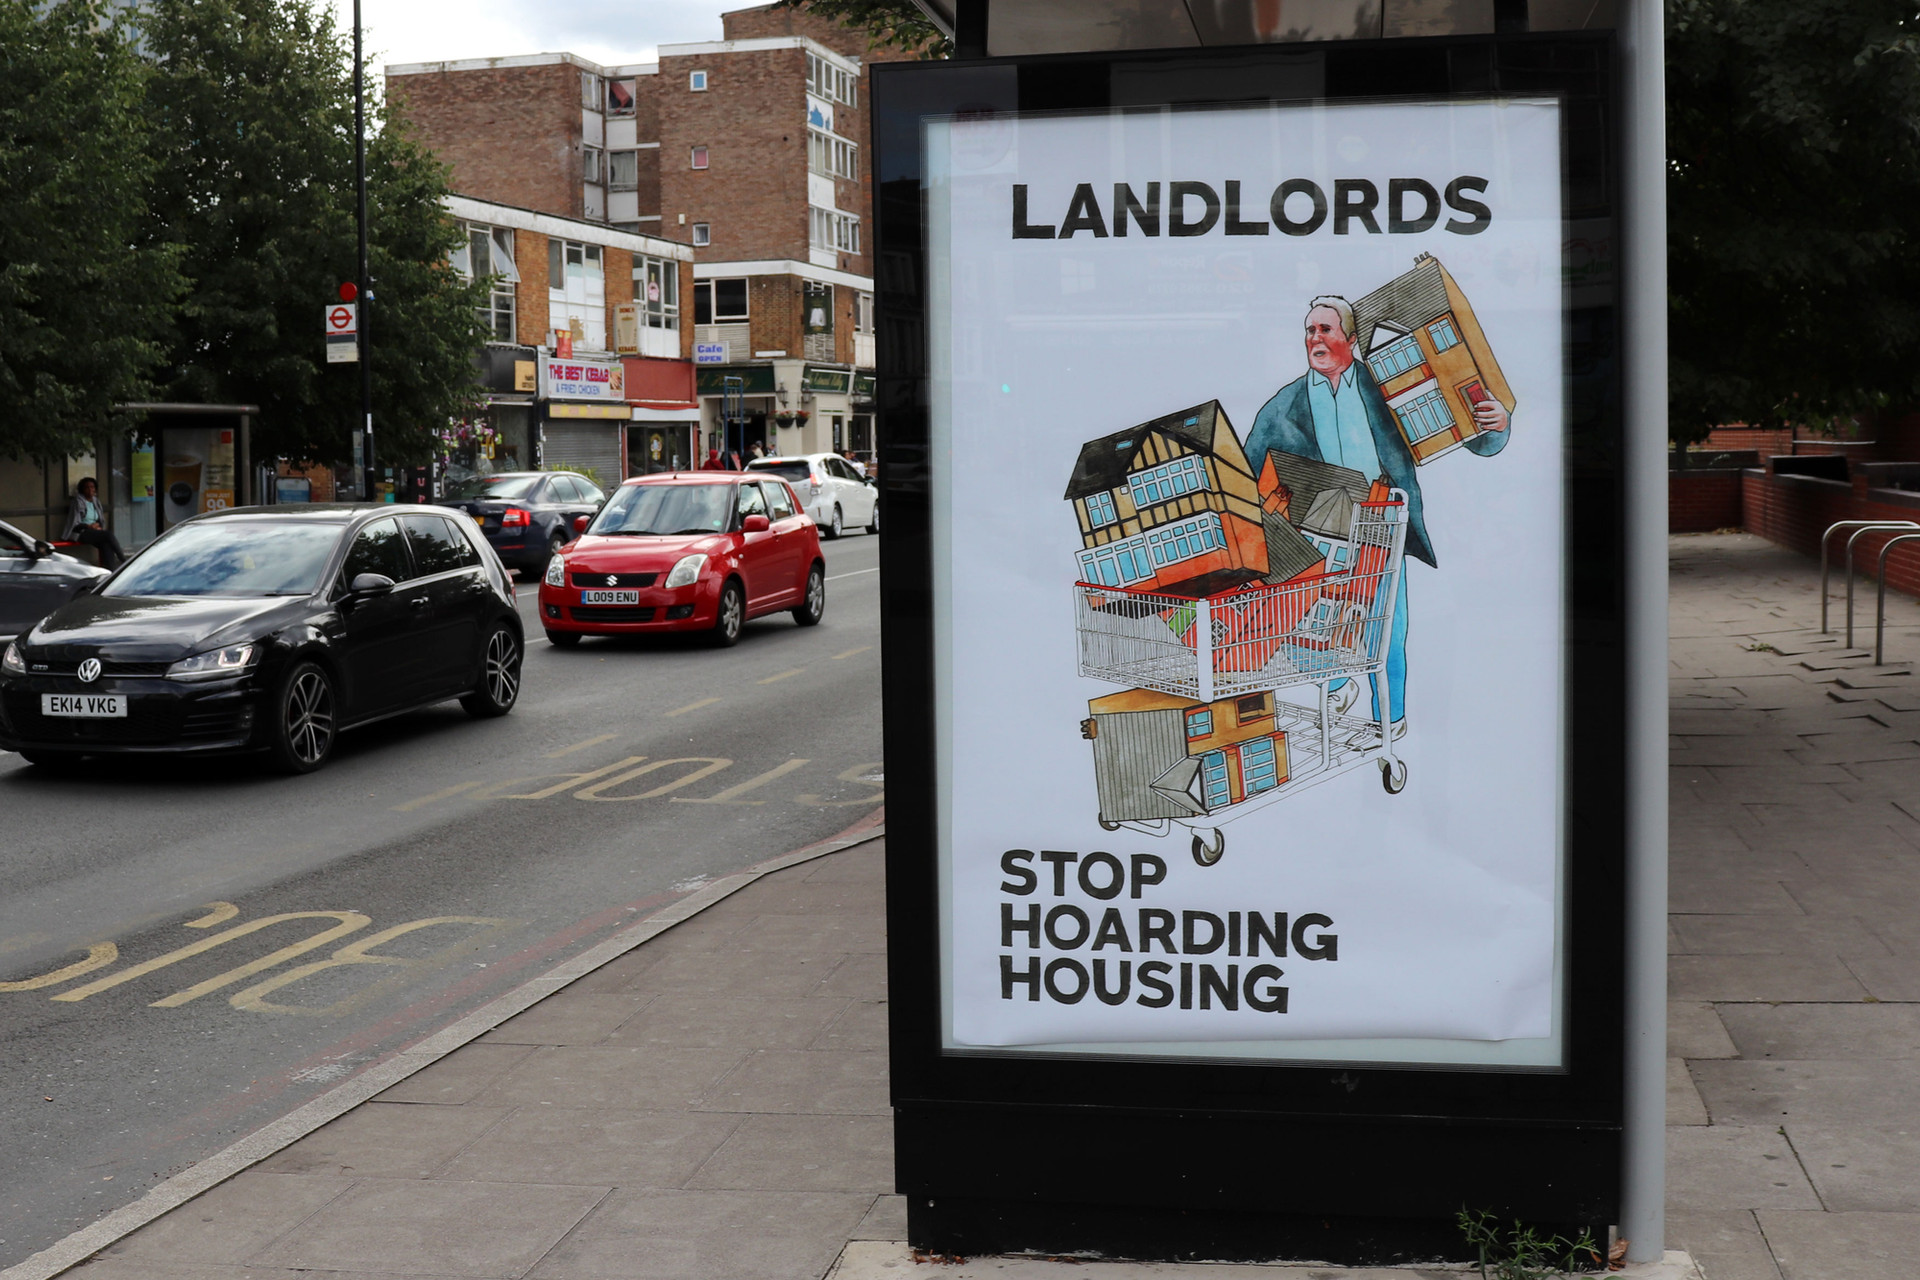 Landlords - Stop Hoarding Housing